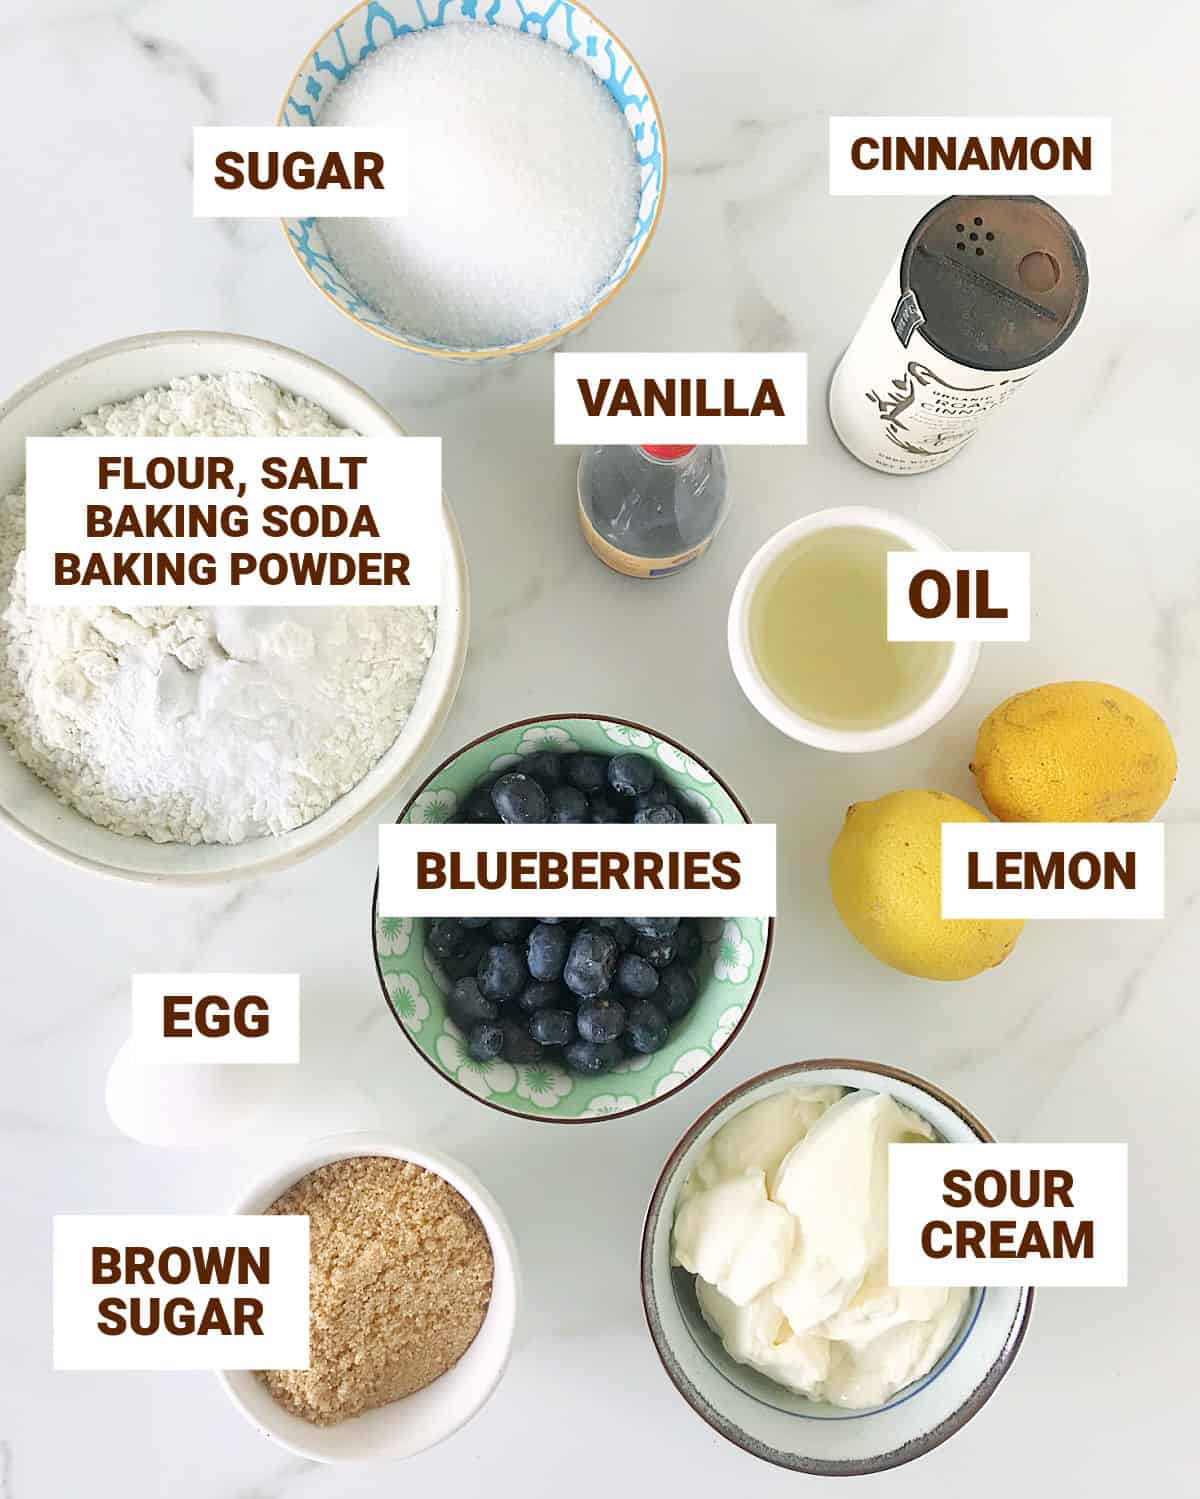 White surface with bowl containing ingredients for lemon blueberry cake including egg, brown sugar, cinnamon, oil, vanilla